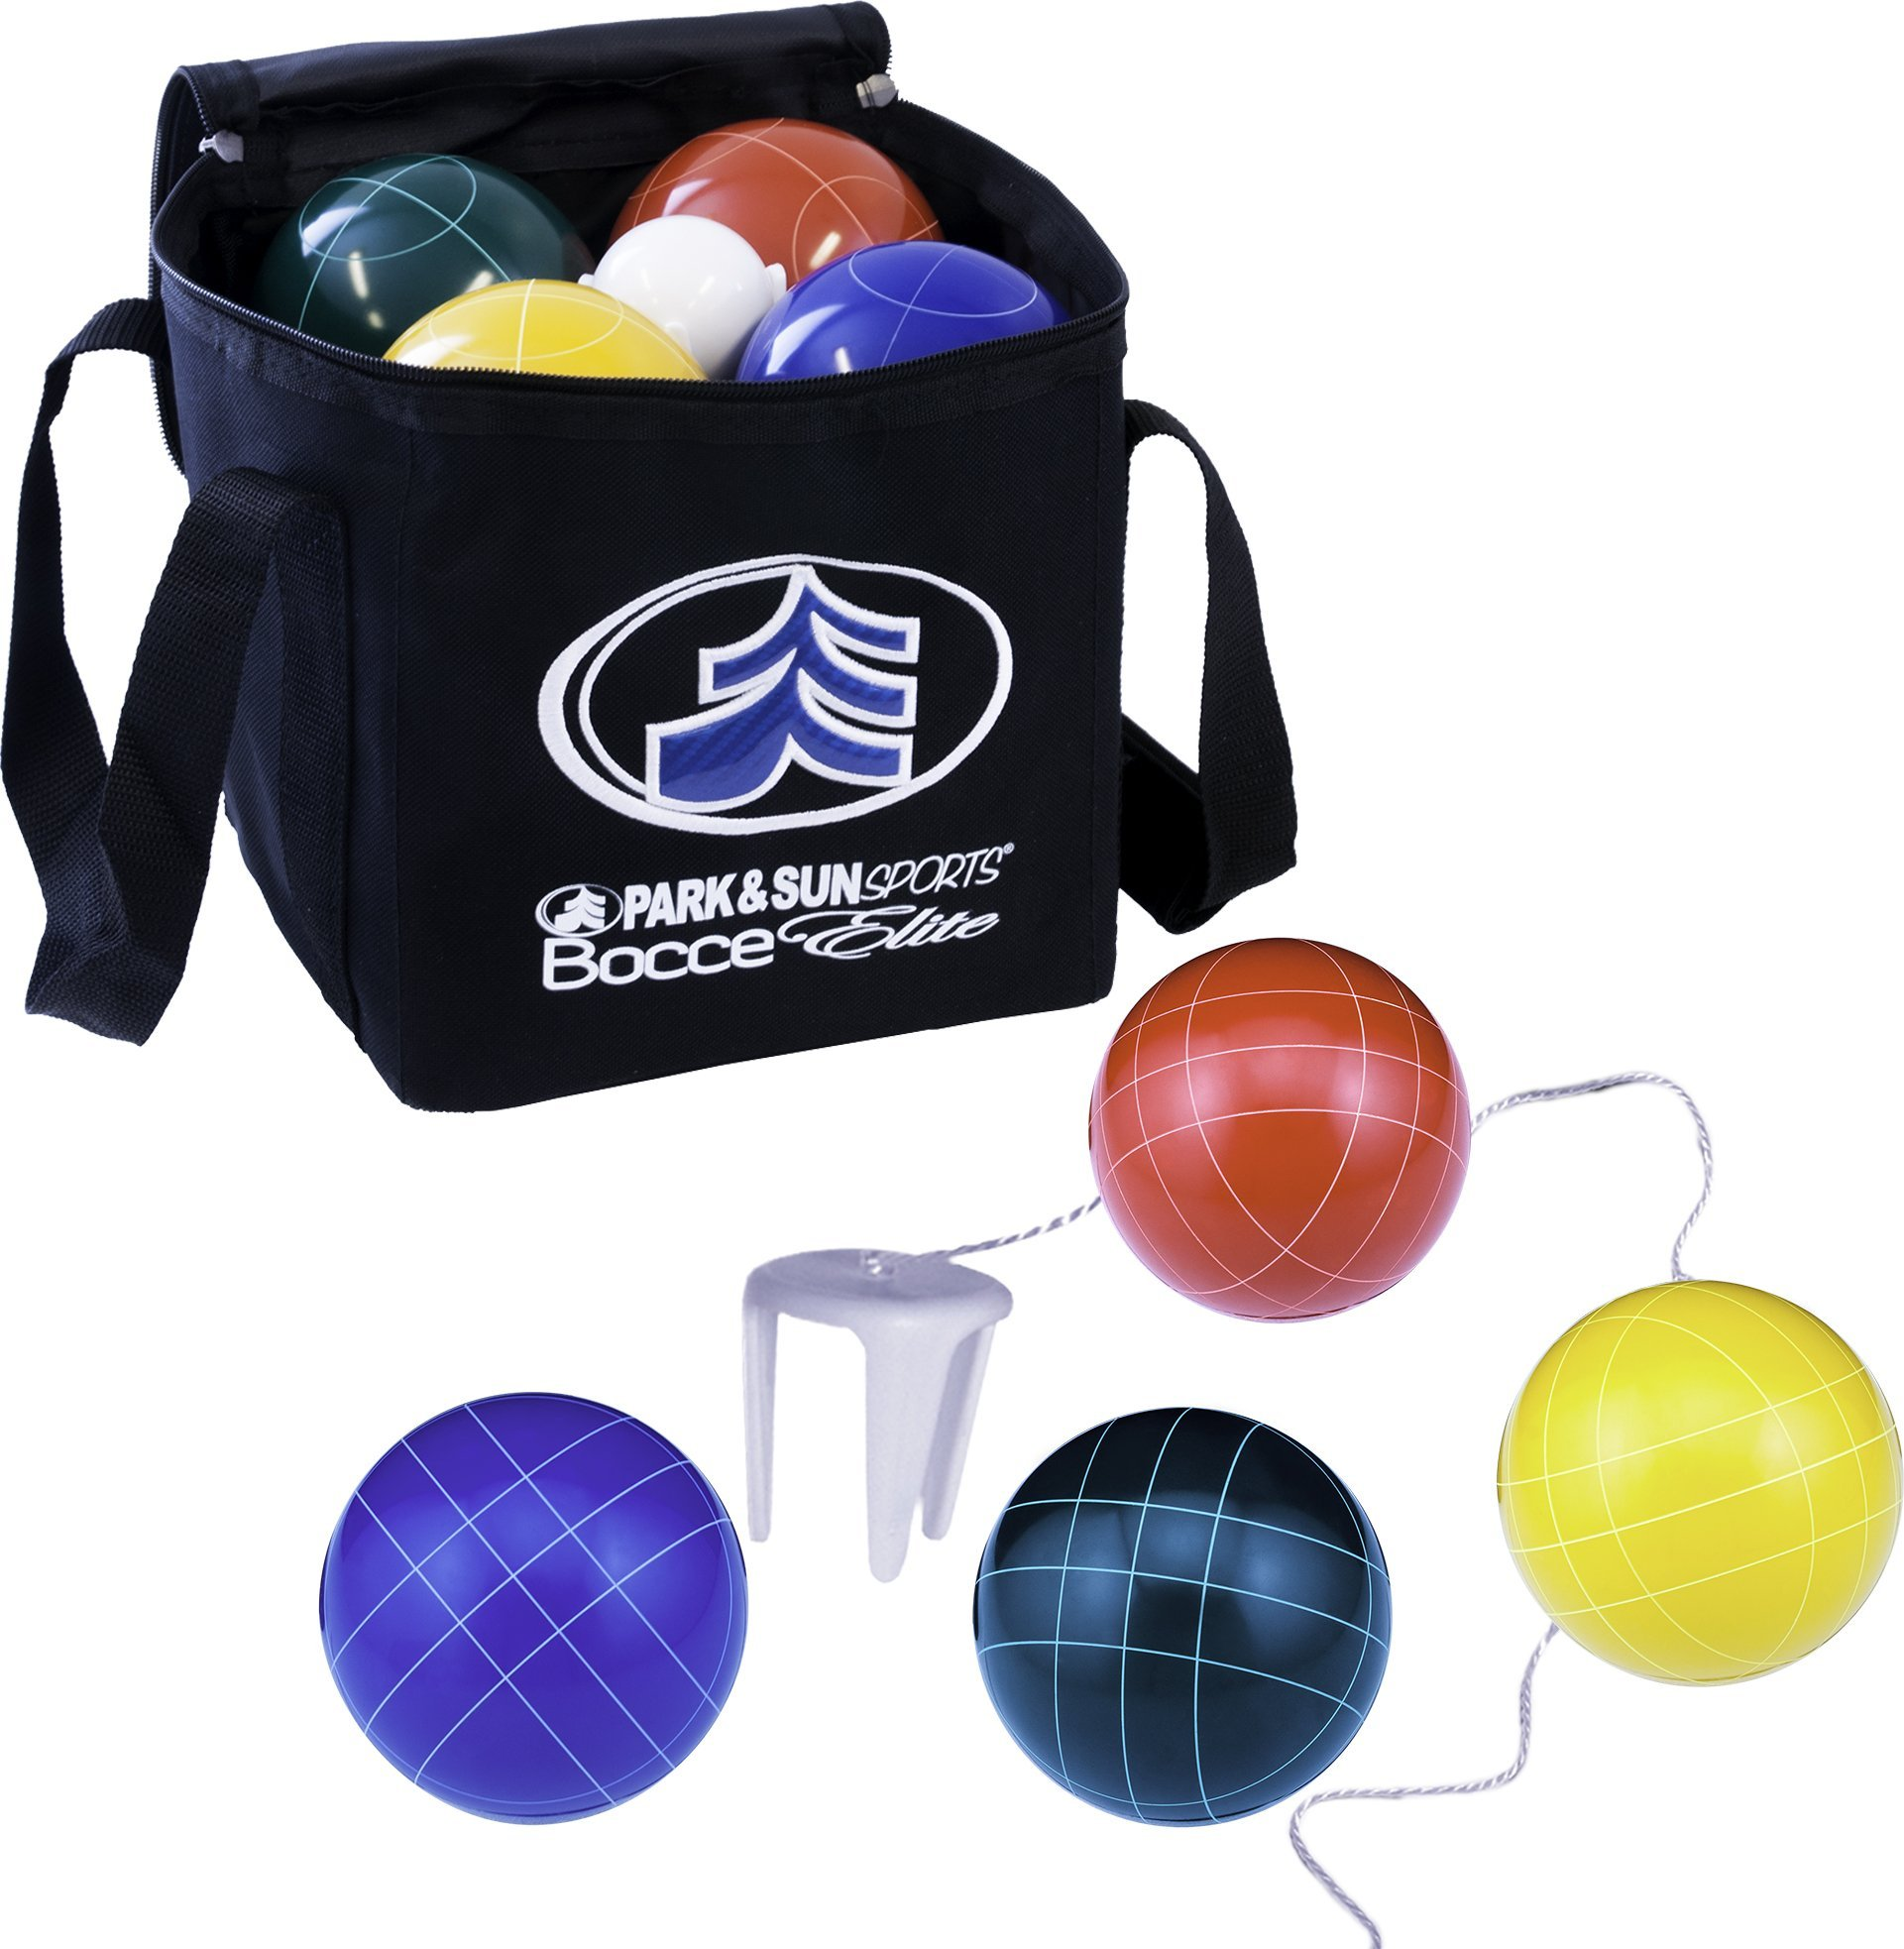 Park & Sun Sports Bocce Ball Set with Deluxe Carrying Bag: Tournament Elite, 100 mm Poly-Resin Balls